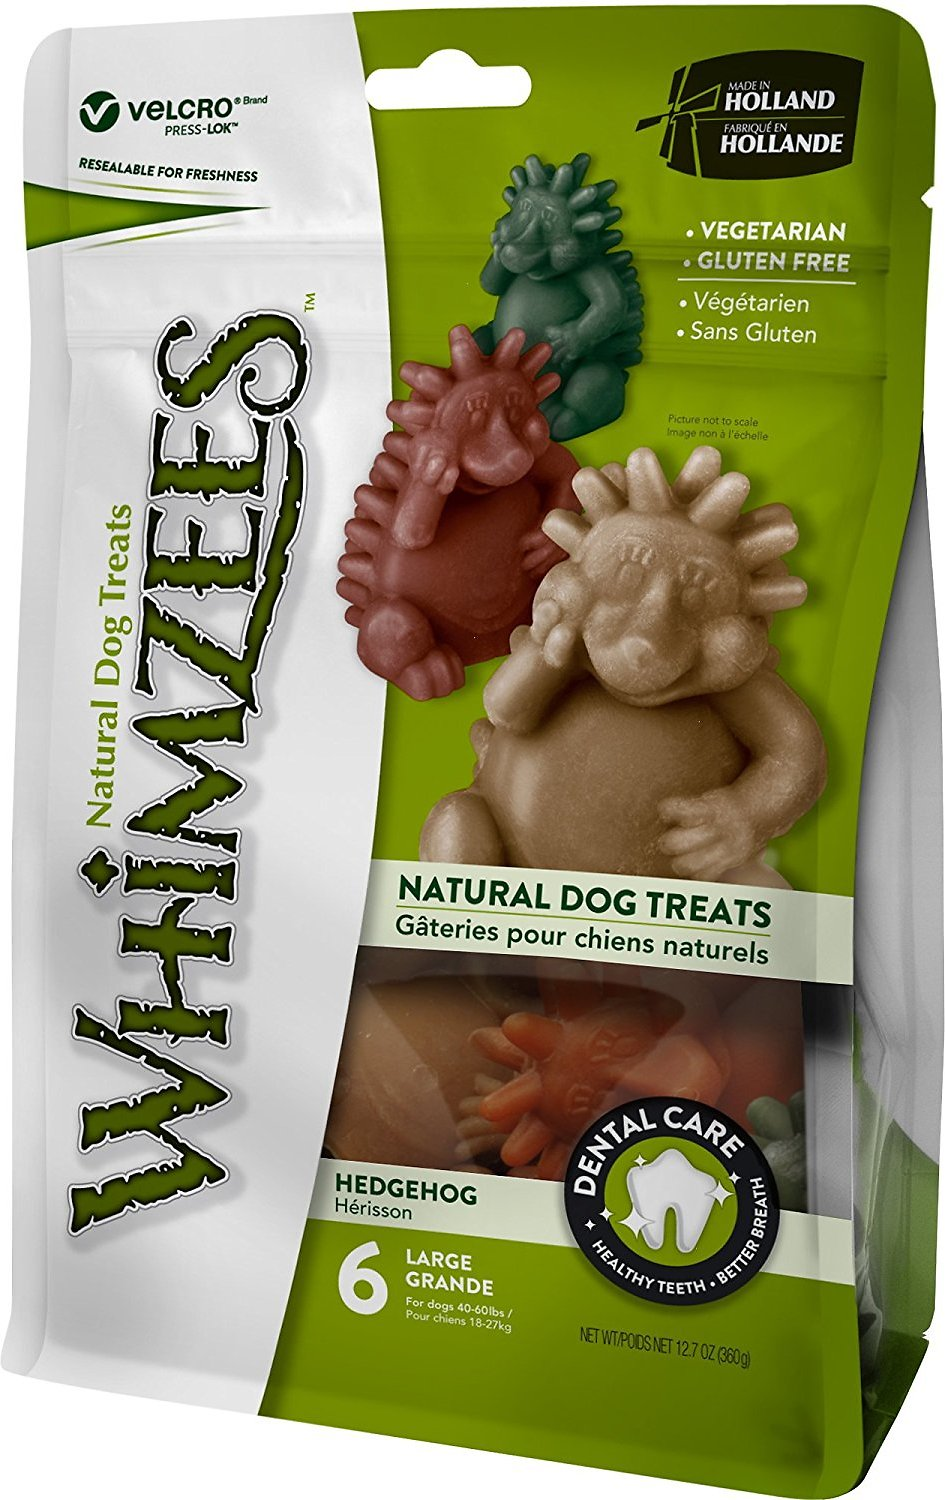 WHIMZEES Hedgehog Dental Dog Treats, Large, 6 count